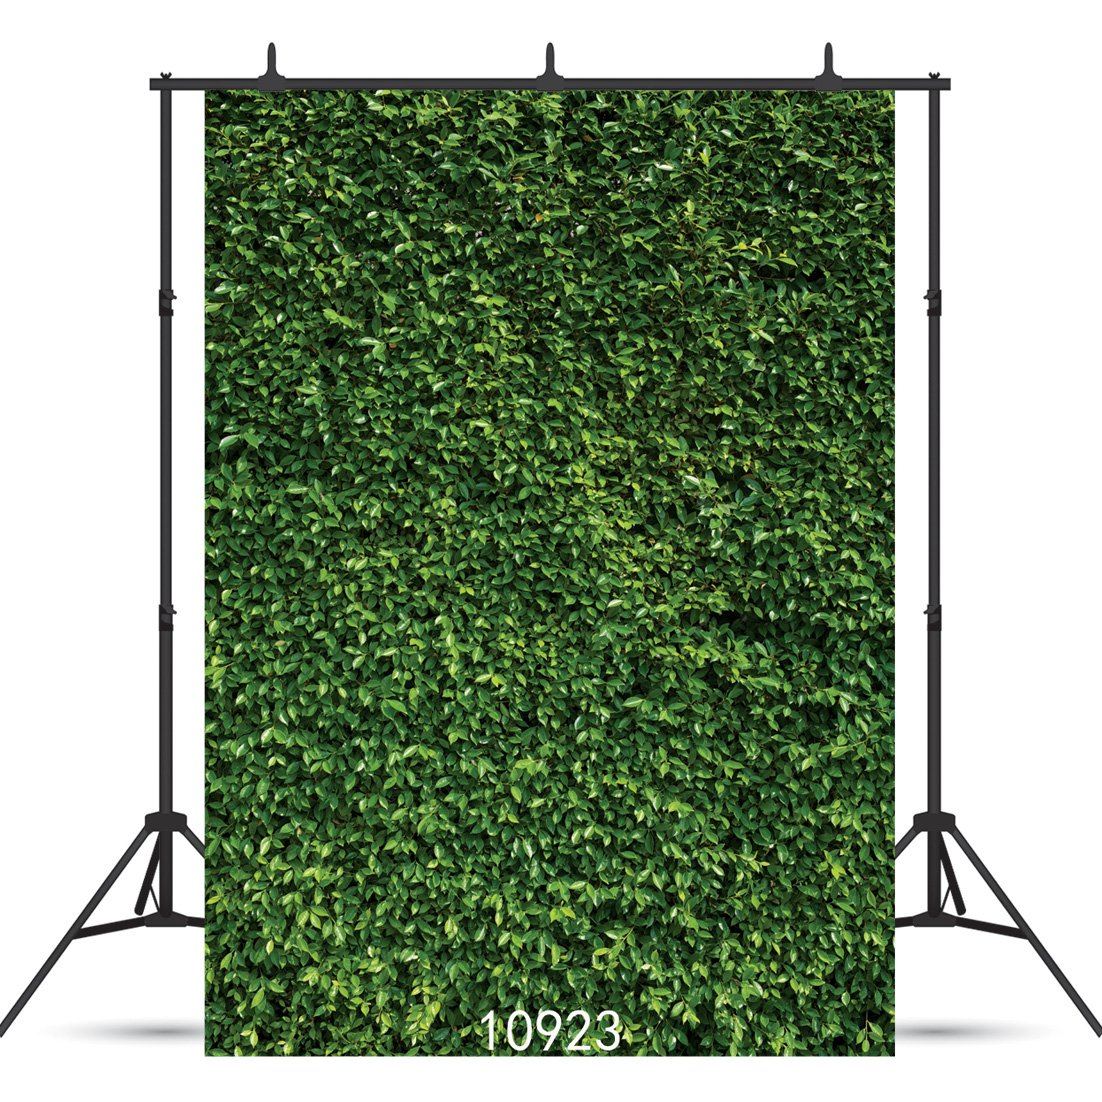 SJOLOON 5X7ft Spring Background Natural Green Lawn Party Photography Backdrop Newborn Baby Lover Wedding Photo Studio Props 10923 by SJOLOON